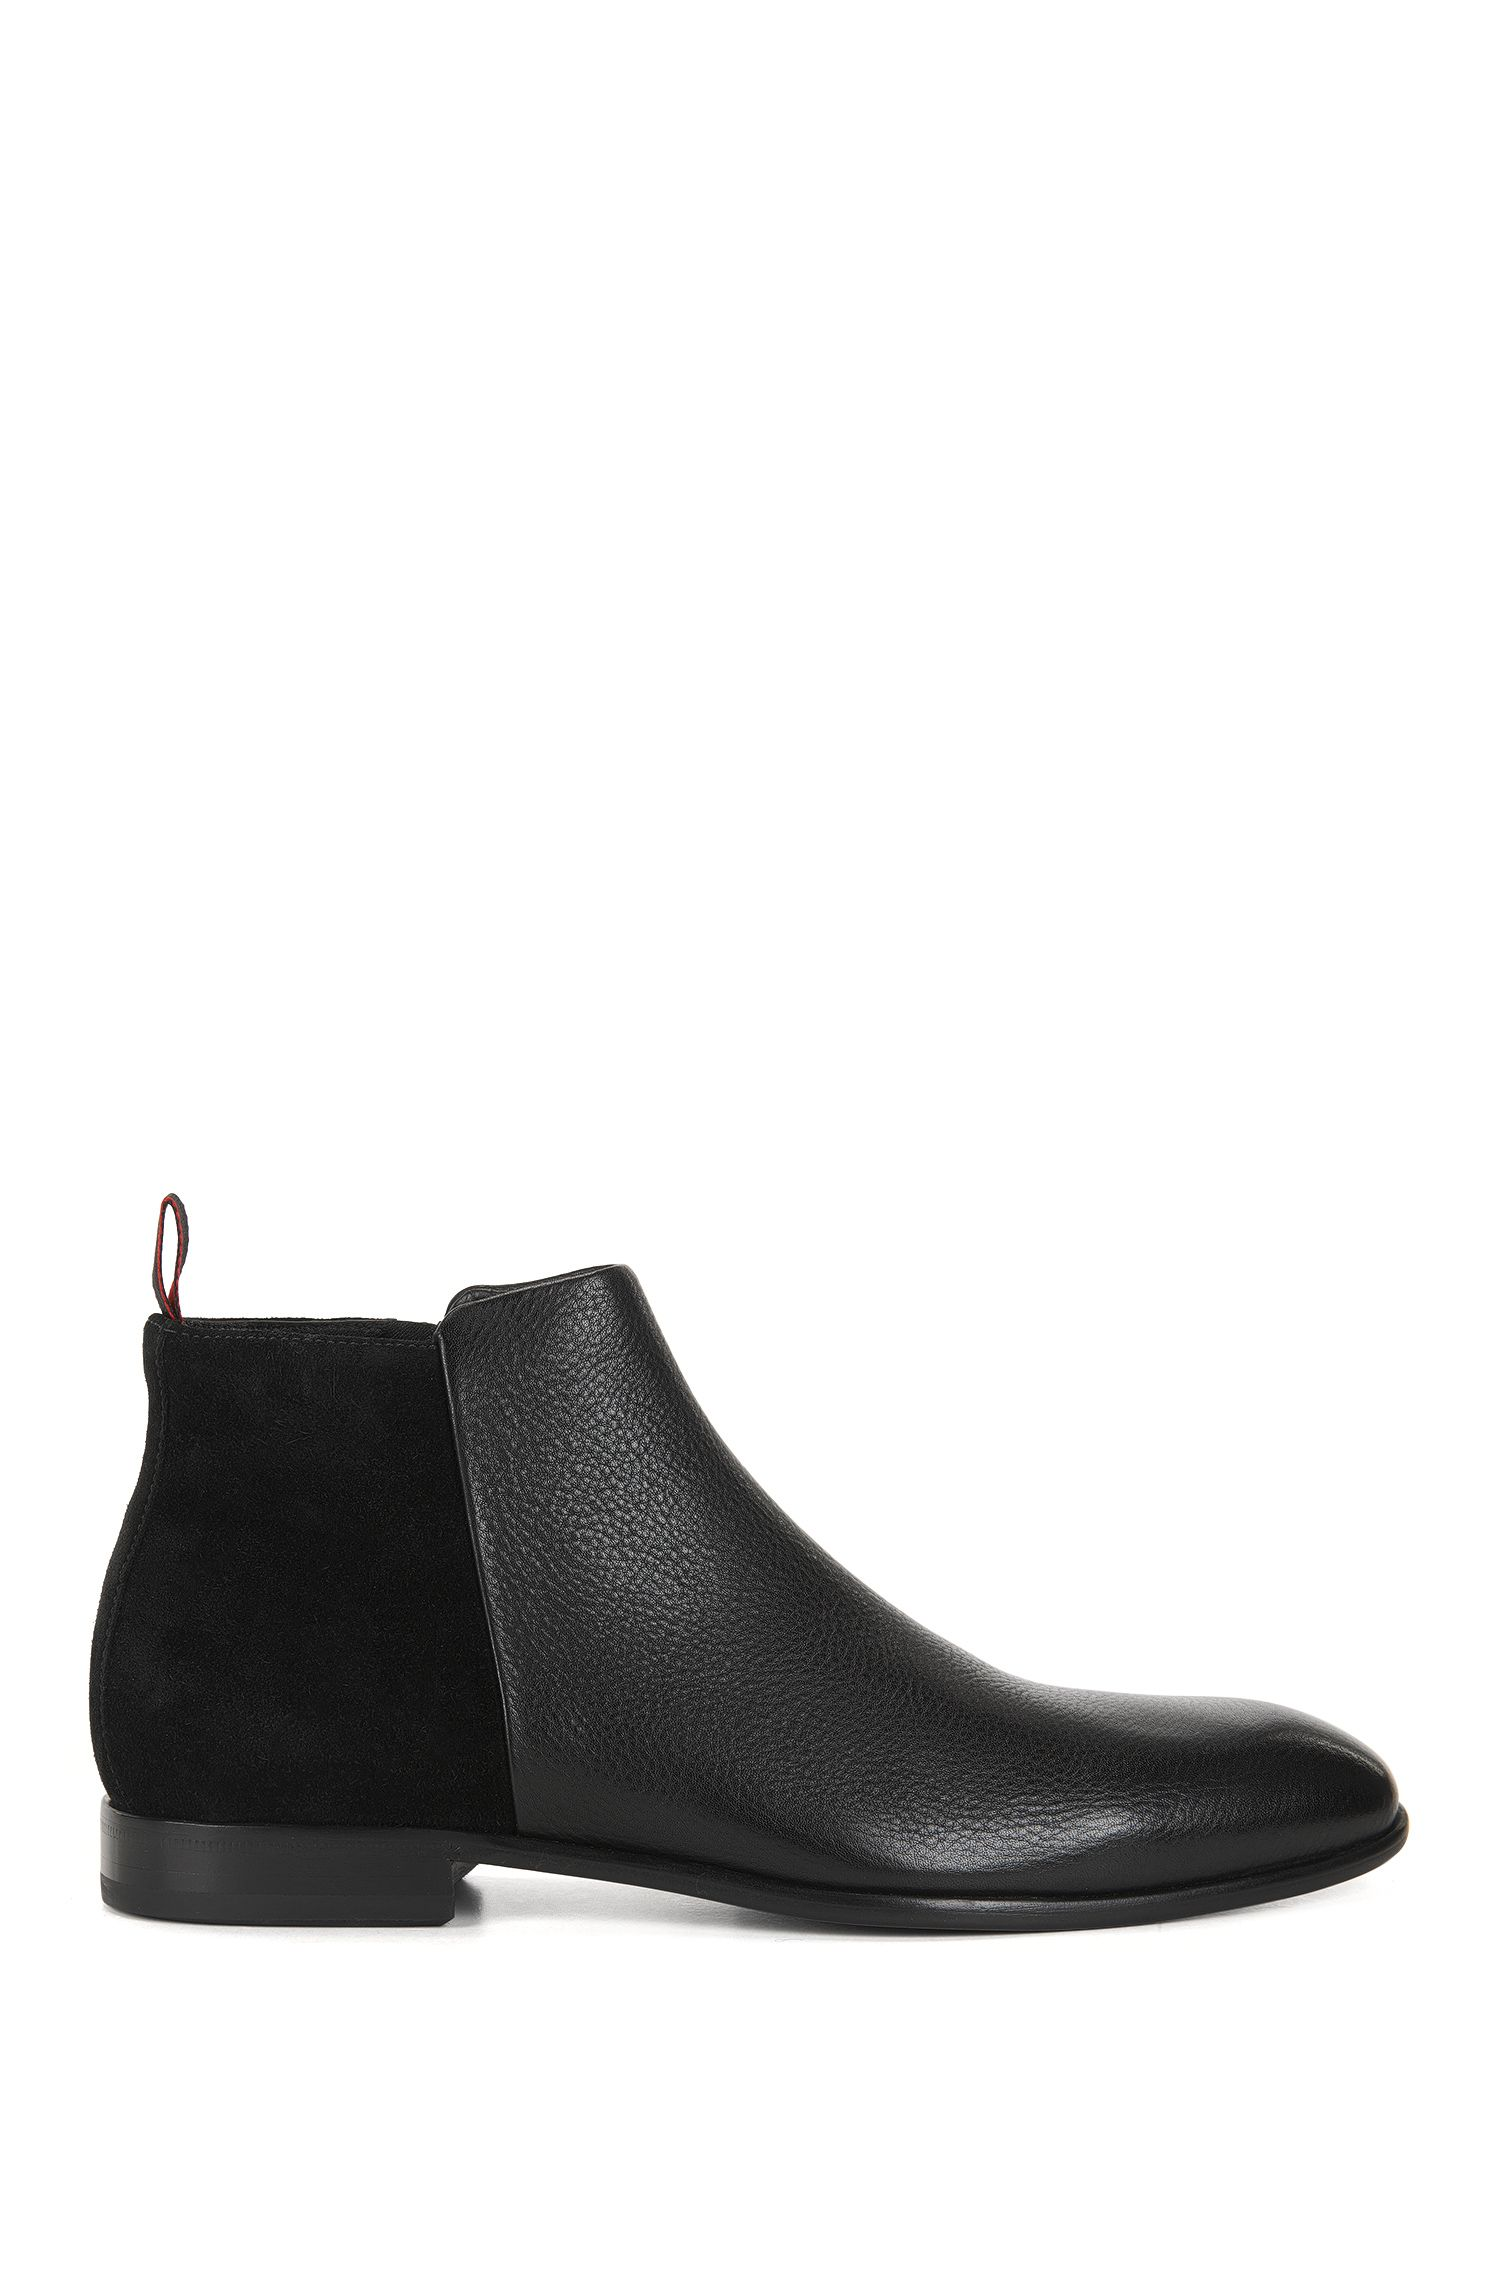 Formal boots in grained leather and suede